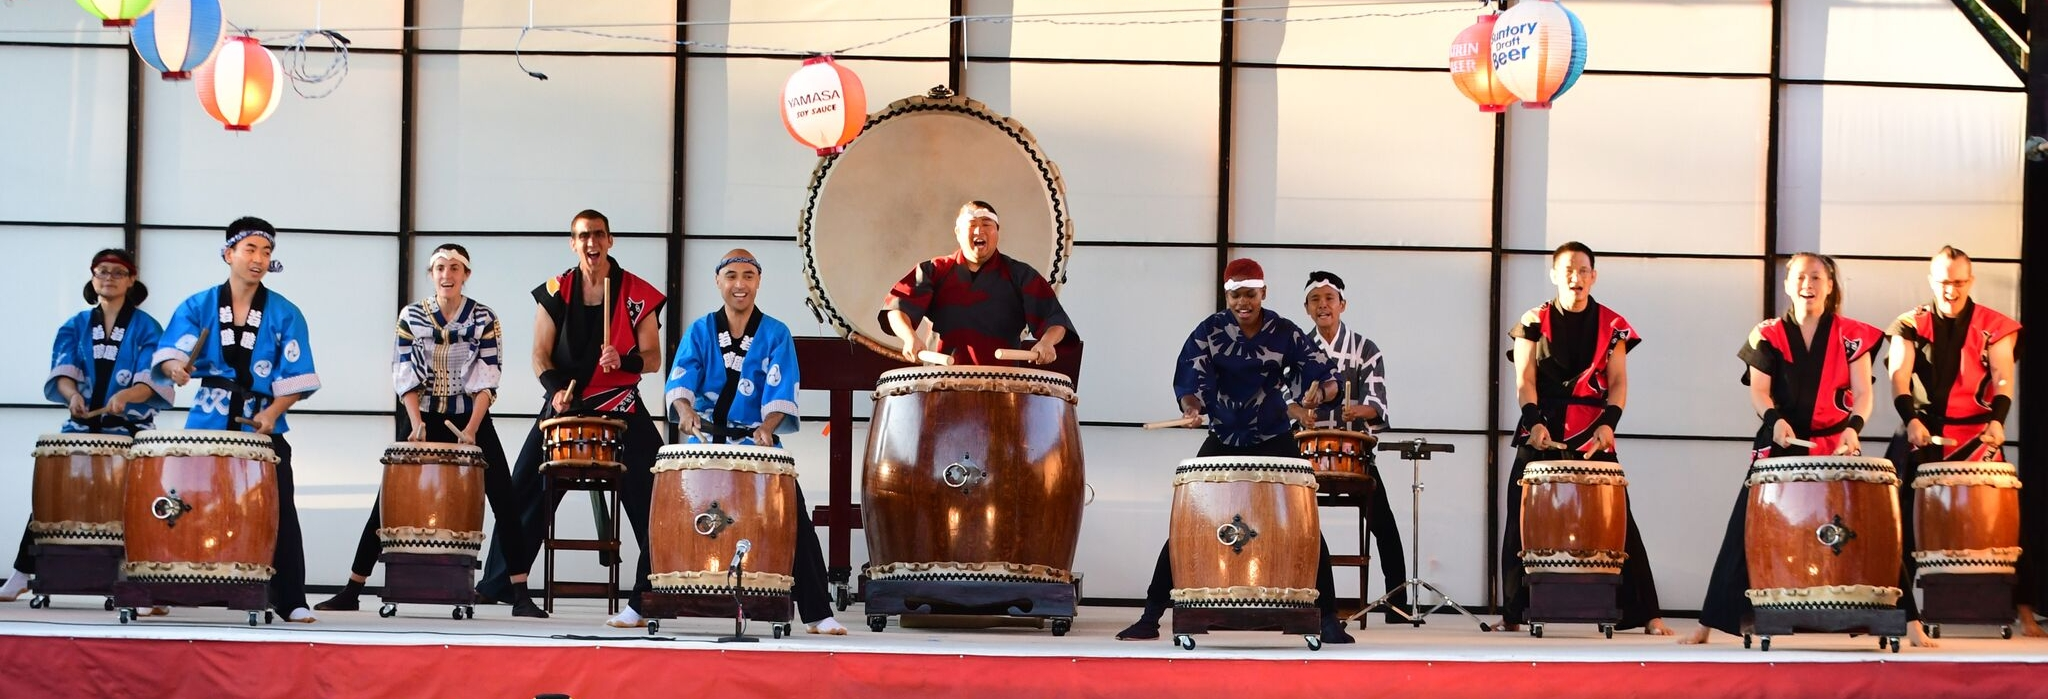 Watch traditional Japanese Taiko drumming at Ginza Holiday in Illinois..jpeg